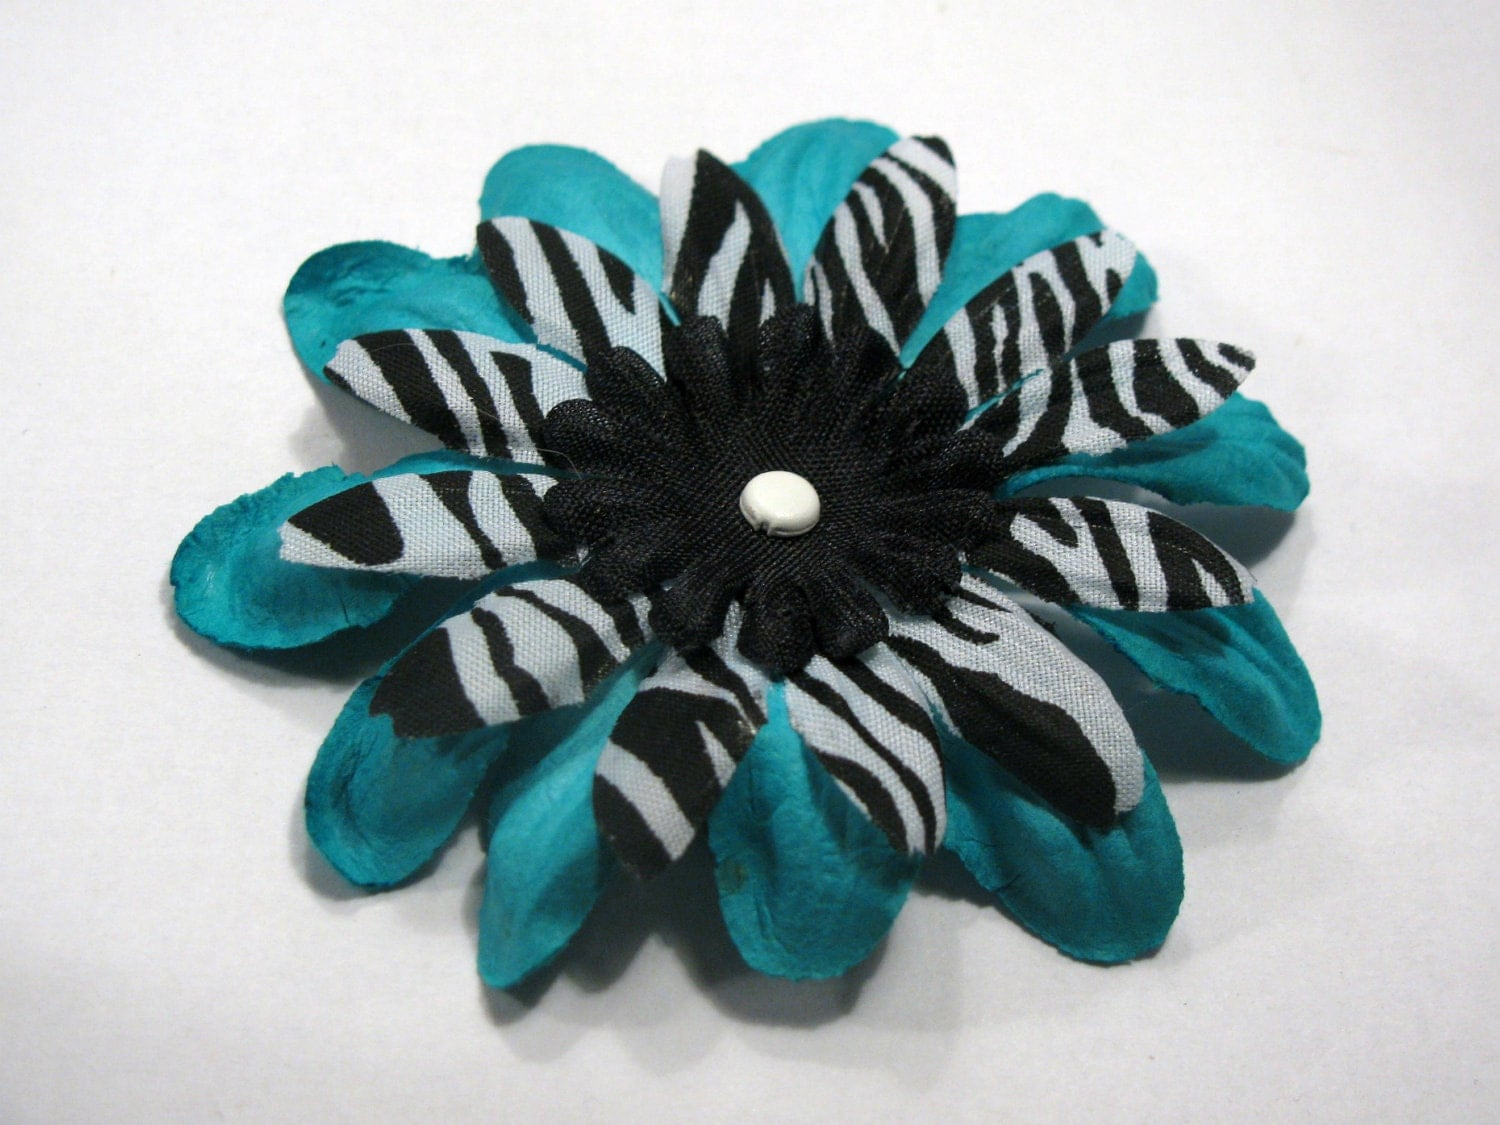 Turquoise and black zebra hair flower clip by VivaVegaBoutique from etsy.com